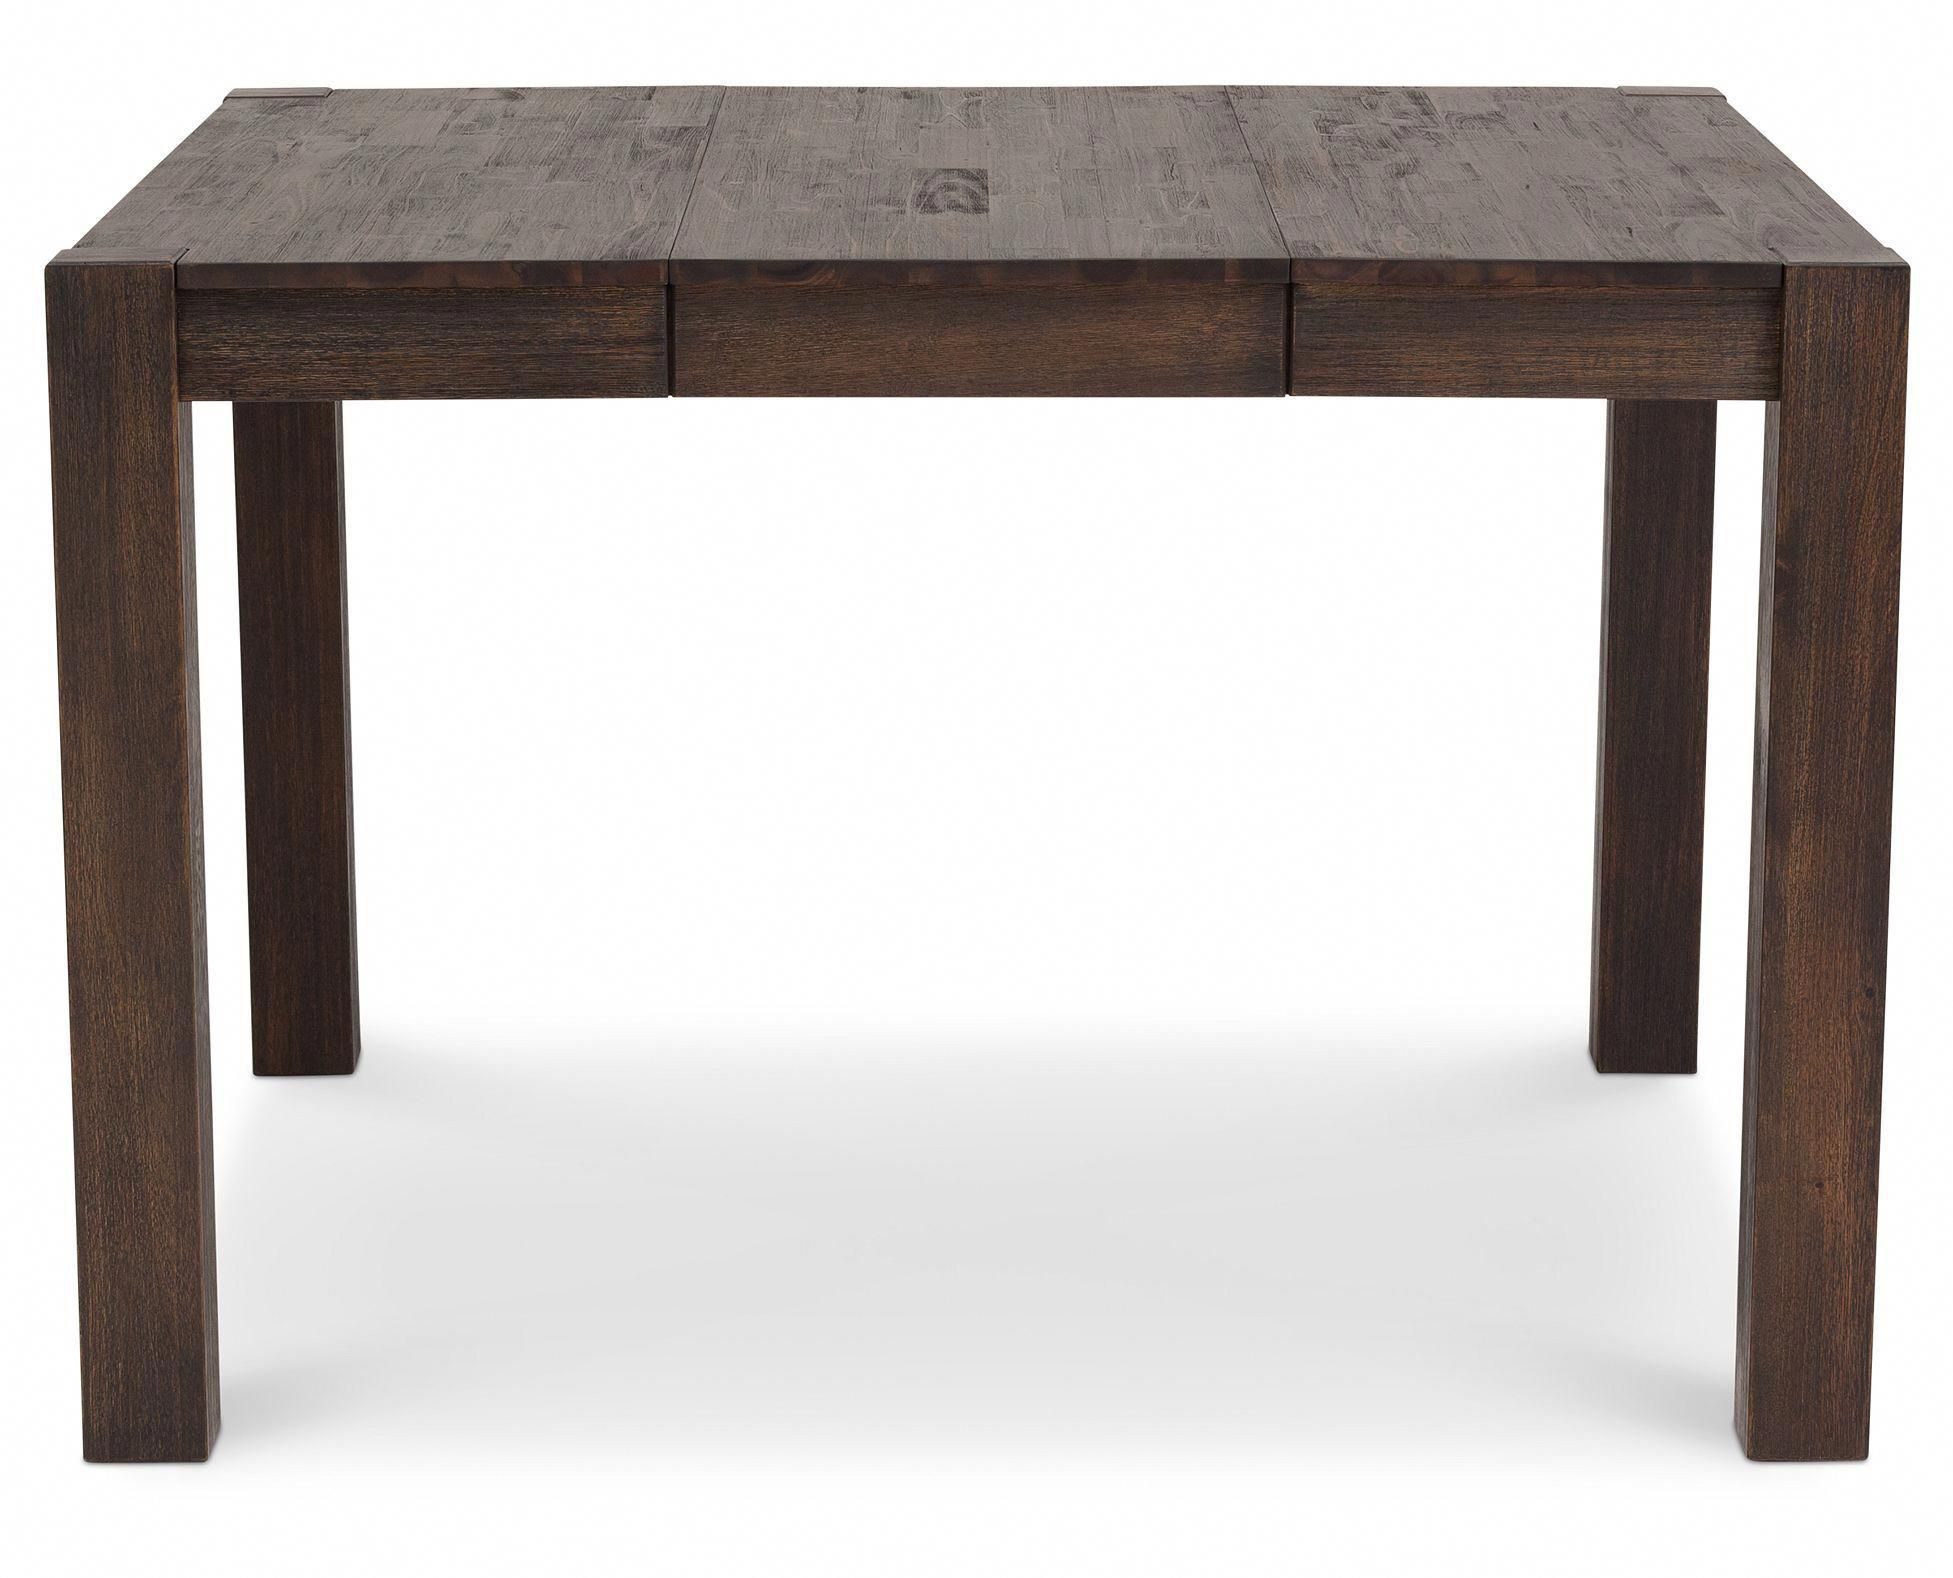 Timeless and modern the alpine retreat counter height table has